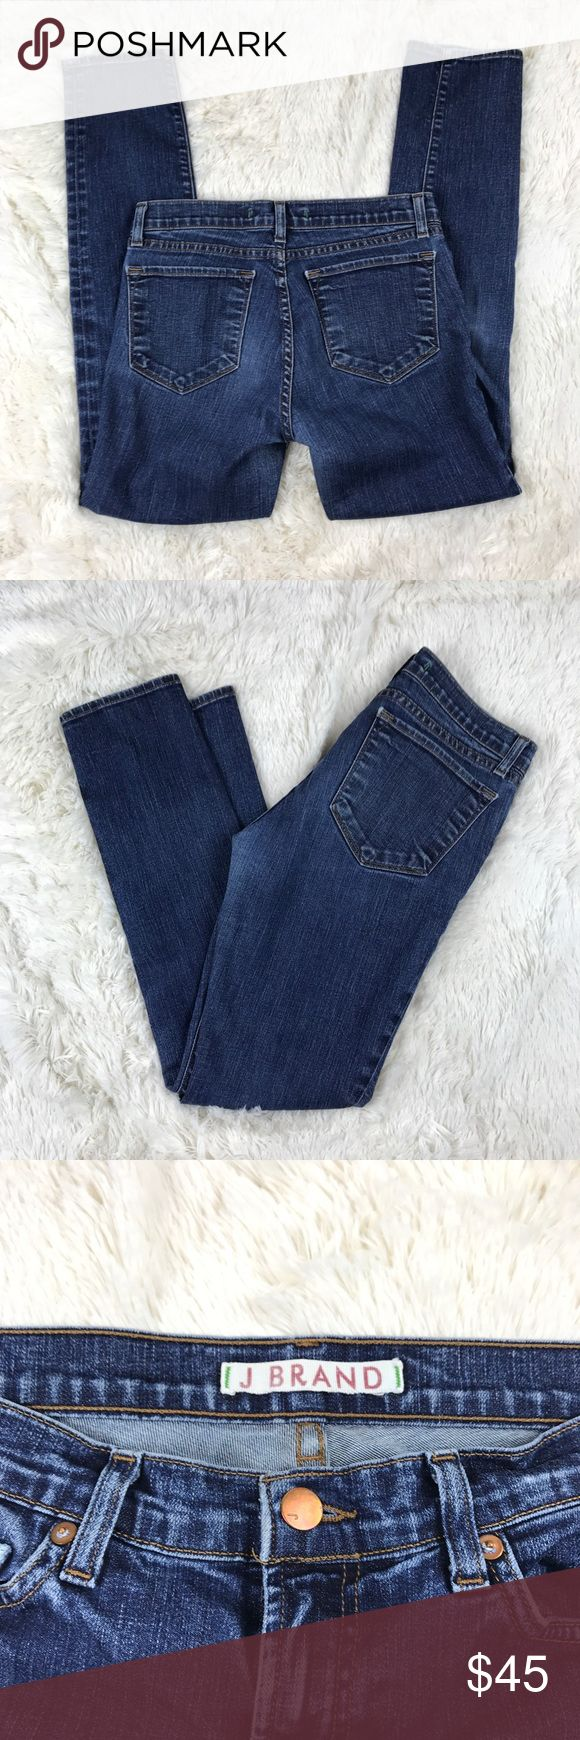 """J Brand Skinny Leg Pure Mid Rise Jeans 28 x 29 J Brand Women's Skinny Leg Pure Mid Rise Jeans 811 Womens Size 28 x 29 Stretch  Good used condition. No flaws or stains. See photos!   Waist laying flat - 15"""" Rise - 8.5"""" Inseam - 29"""" Leg Opening - 5 3/4""""  Materials - 92% cotton, 7% polyester, 1% spandex  All measurements approximate, taken un-stretched laying flat. J Brand Jeans Skinny"""